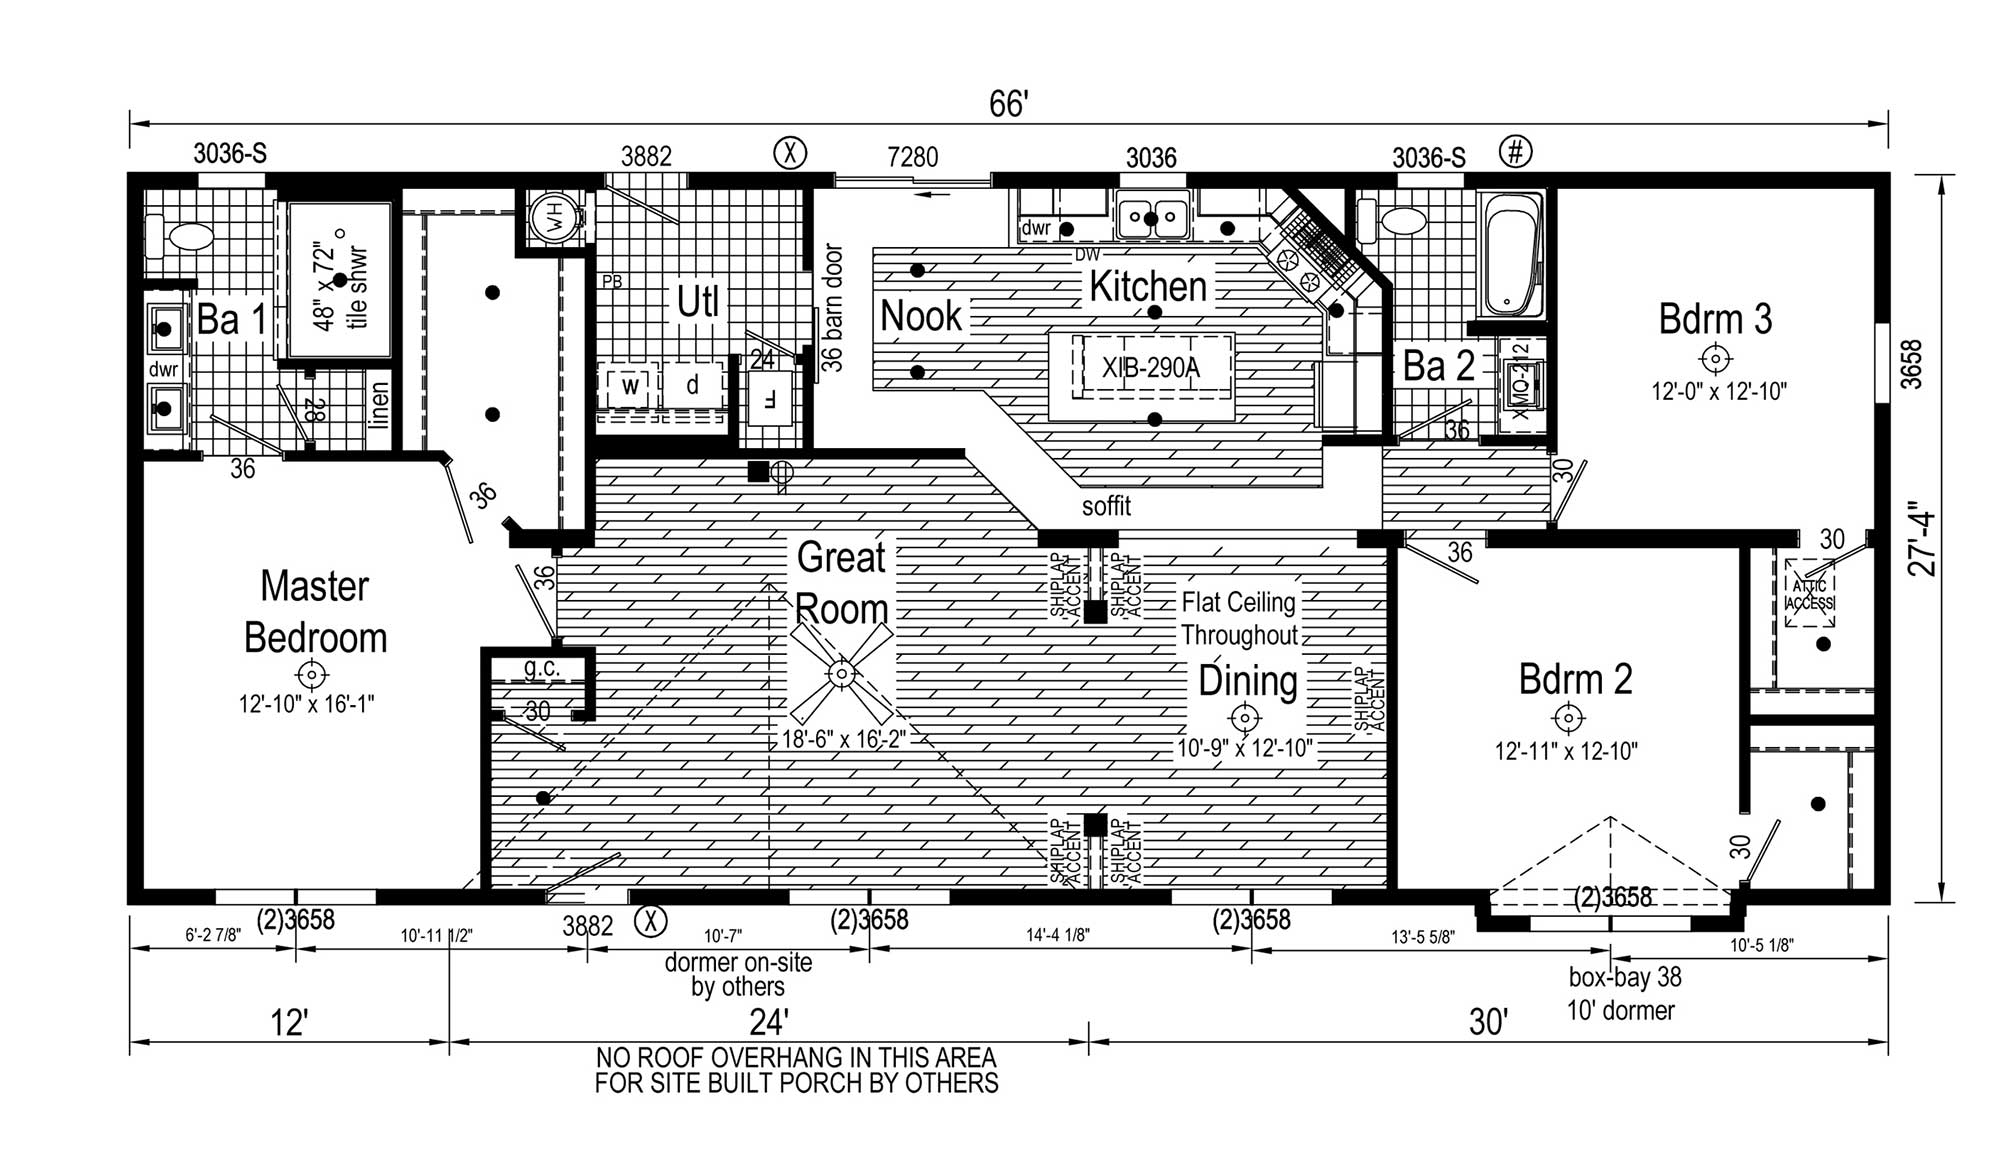 1713 Sq. Ft. Modular Home Floor Plan - Carolina Modular Home ... Atrium House Plans Sq Ft Ranch on new one story house plans, 1800 country house plans, 1800 sq ft cape cod, 1800 mansions floor plans, 4-bedroom one story ranch house plans, 5 bedroom home house plans, old victorian homes house plans, craftsman style ranch house plans, french traditional house plans, country ranch house plans, 1000 sq ft ranch plans, 1800 foot house plans, straw bale house plans, 1800 sq ft brick house, narrow lot craftsman house plans, square foot house plans, kerala small house plans, rectangle ranch style home plans, cottage craftsman ranch house plans, open ranch style house plans,